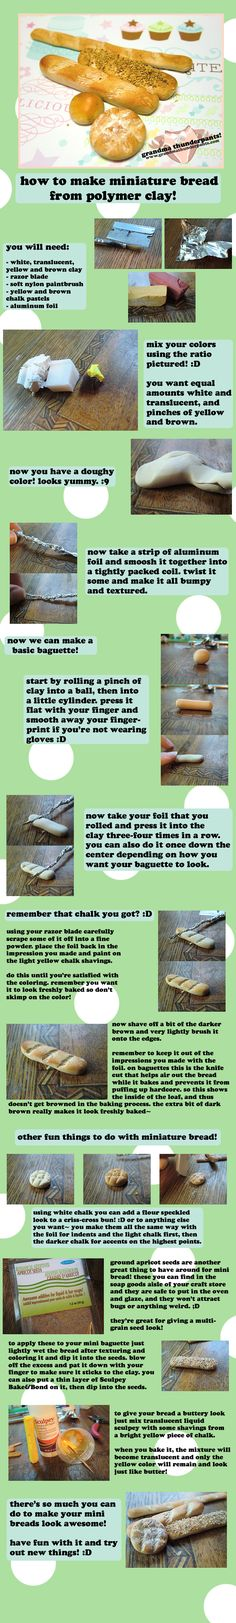 Miniature Clay Bread TUTORIAL by *GrandmaThunderpants on deviantART